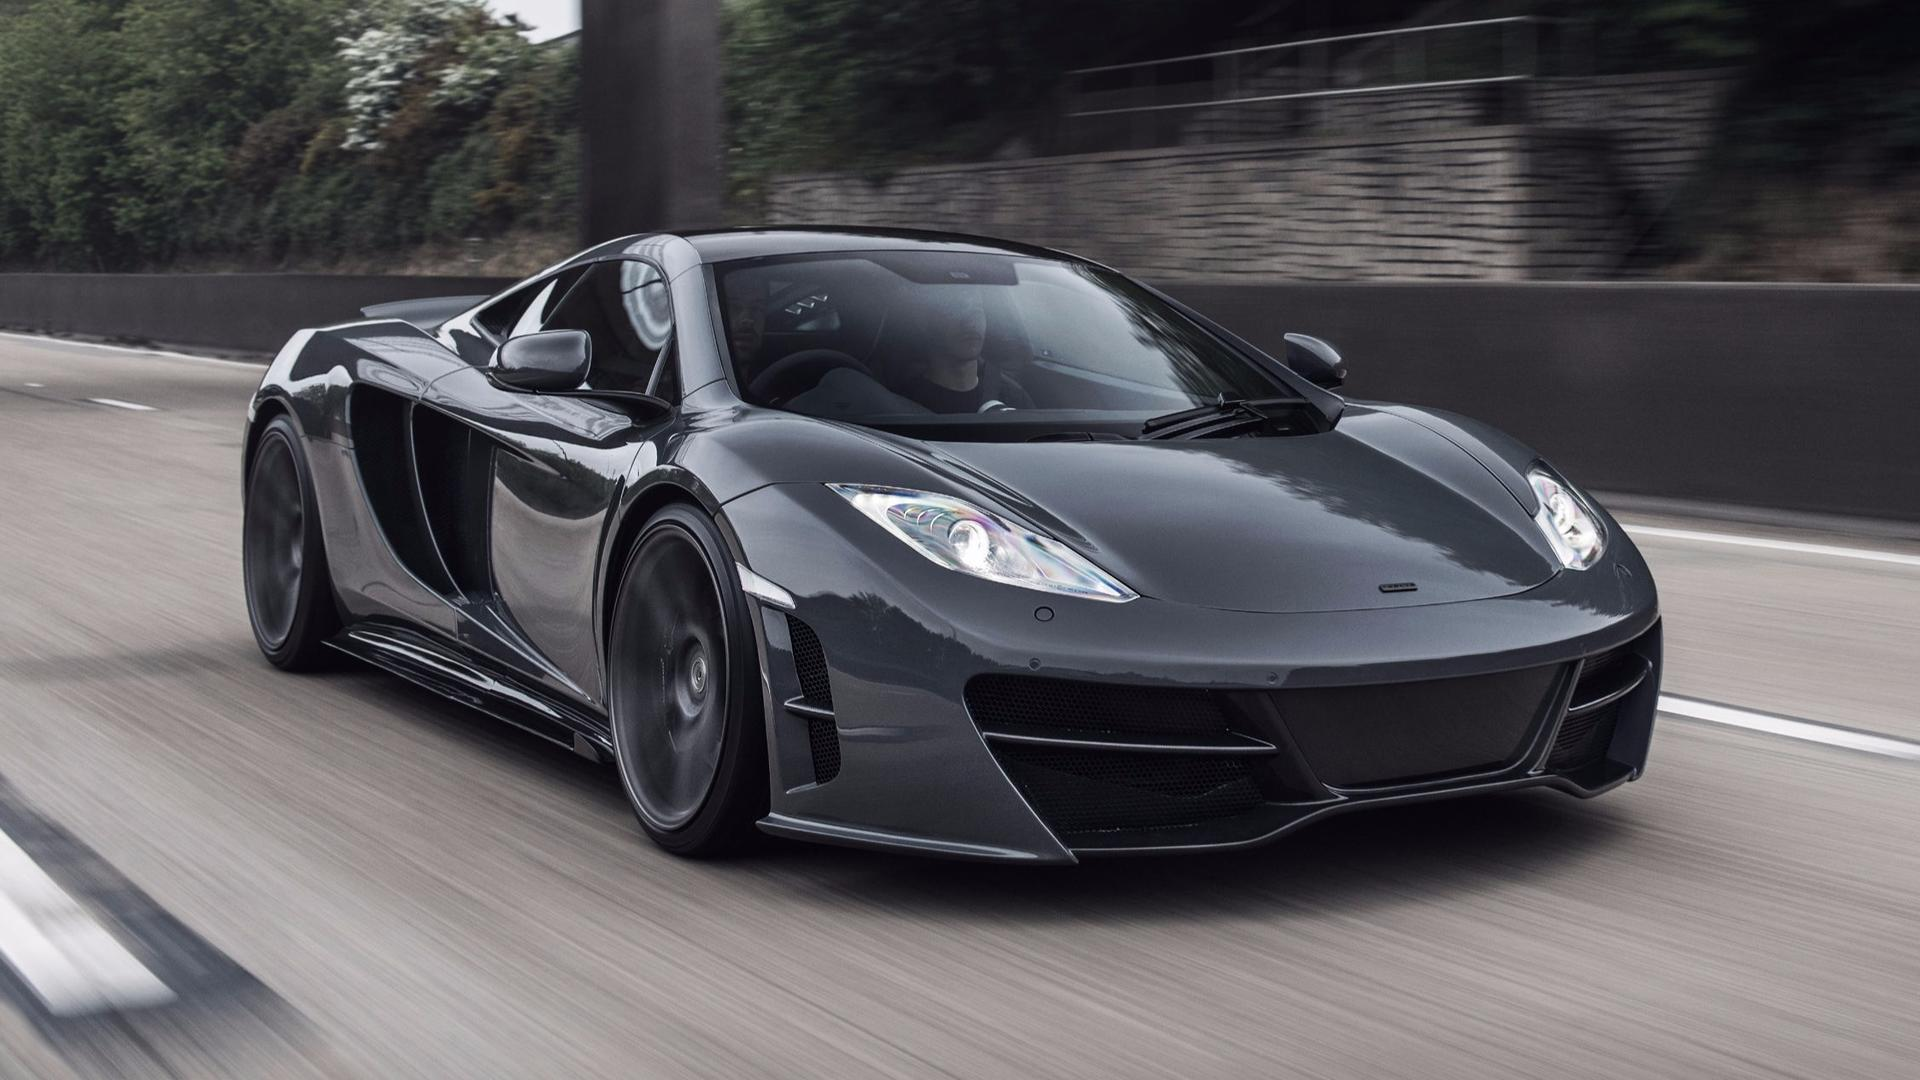 Mclaren Mp4 12c Receives Subtle Updates Courtesy Of Mulgari